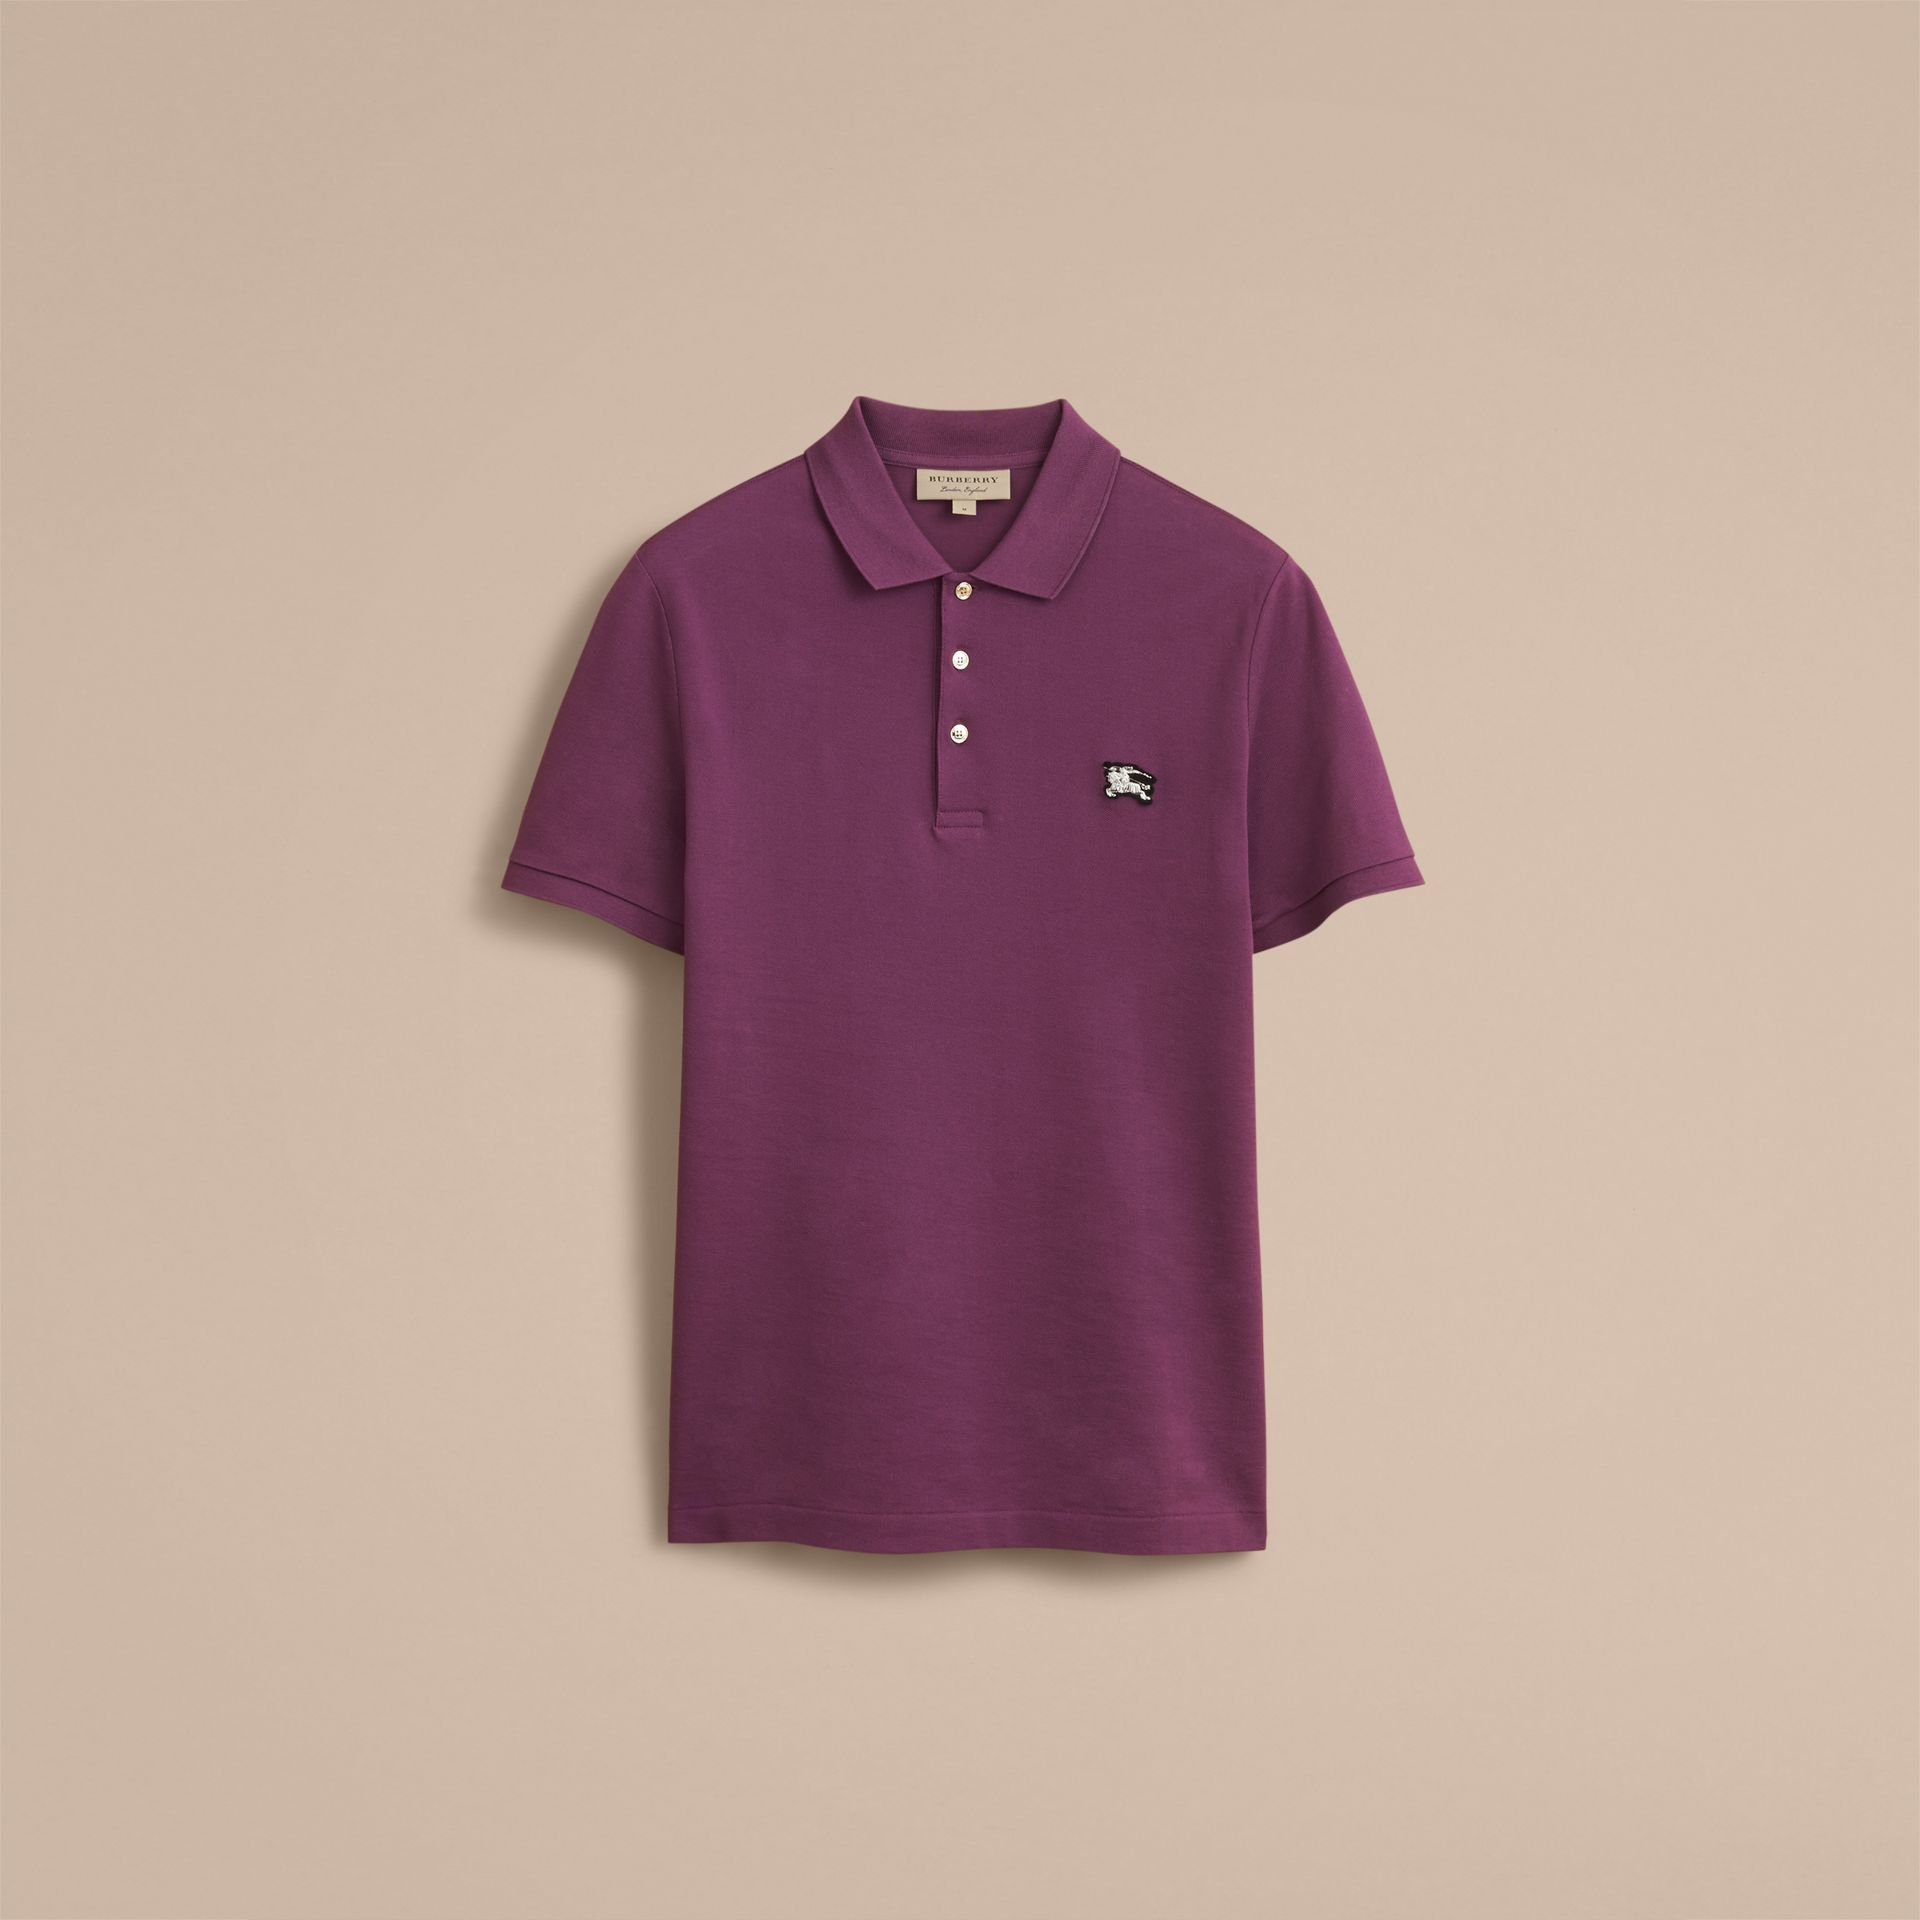 Cotton Piqué Polo Shirt in Heather - Men | Burberry Australia - gallery image 4